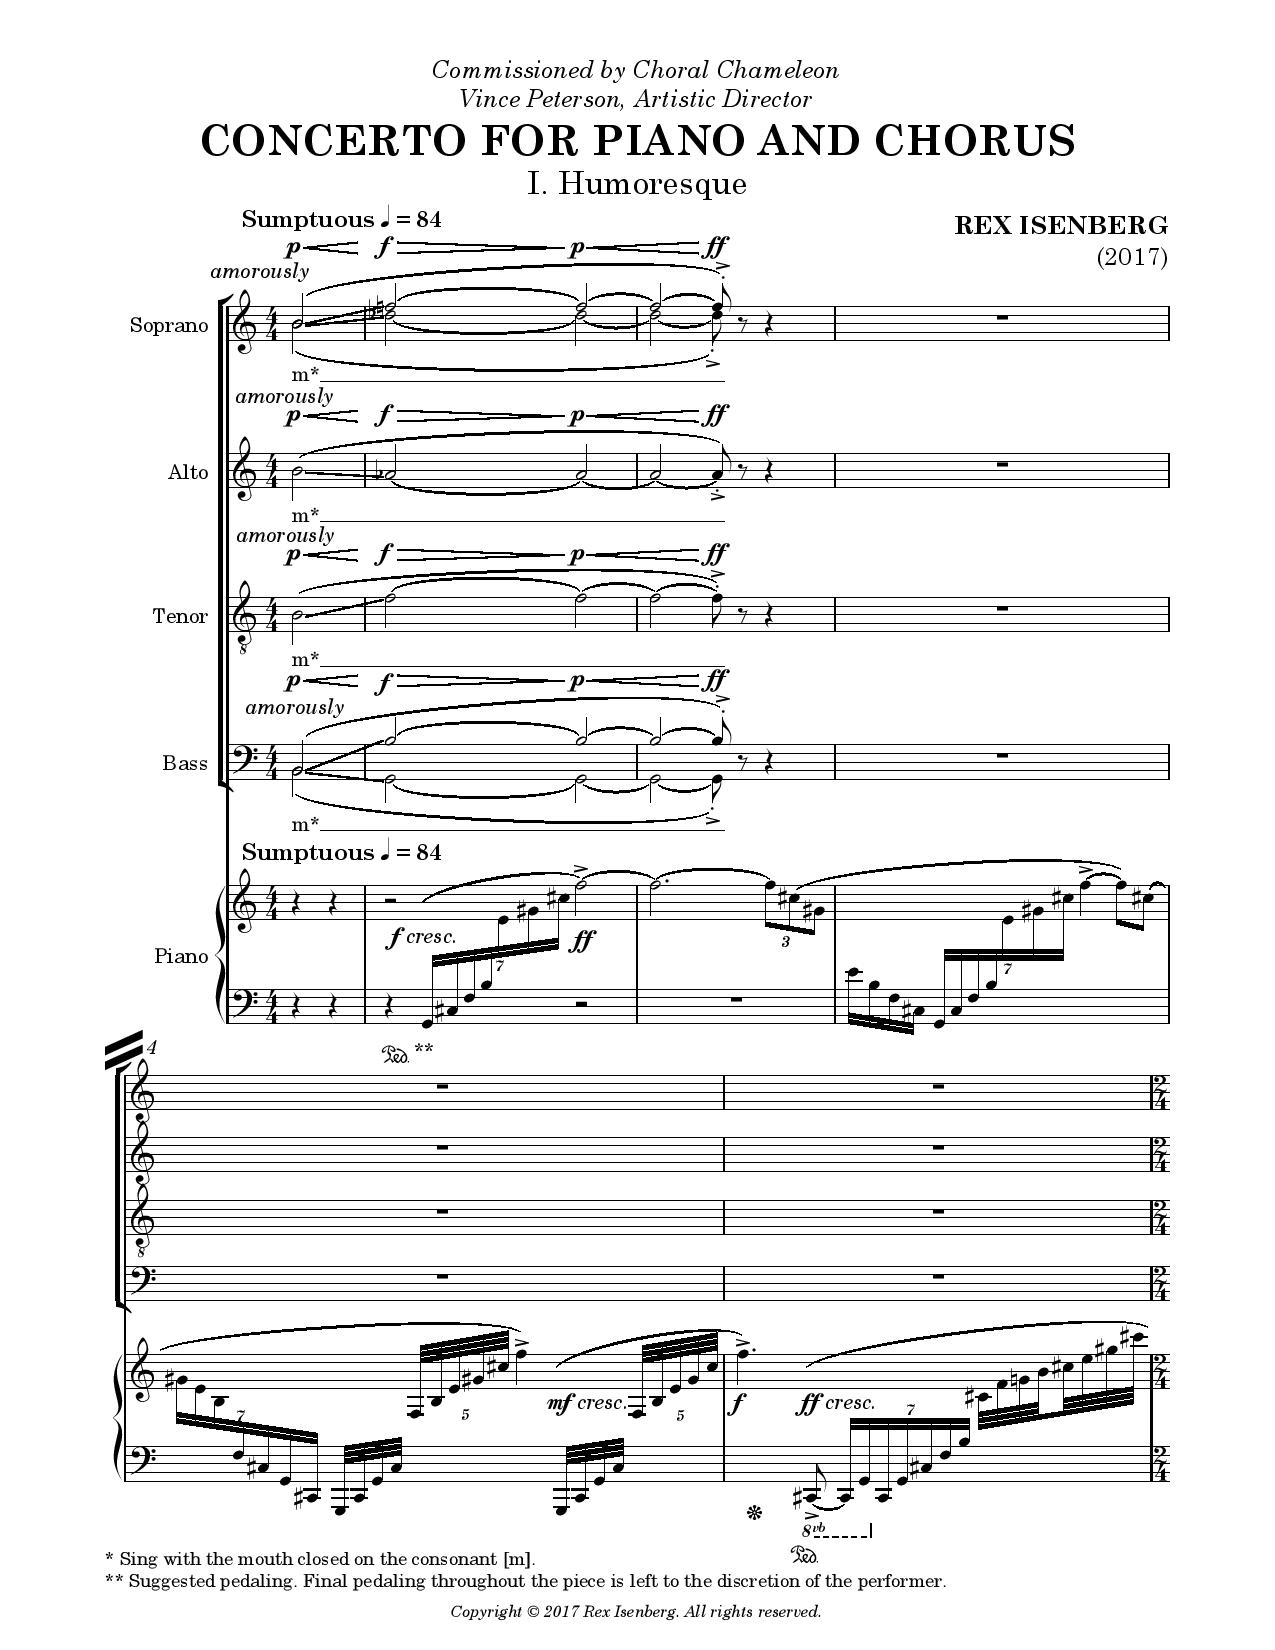 Rex Isenberg - Concerto for Piano and Chorus (2017) FIRST PAGE ONLY.jpg